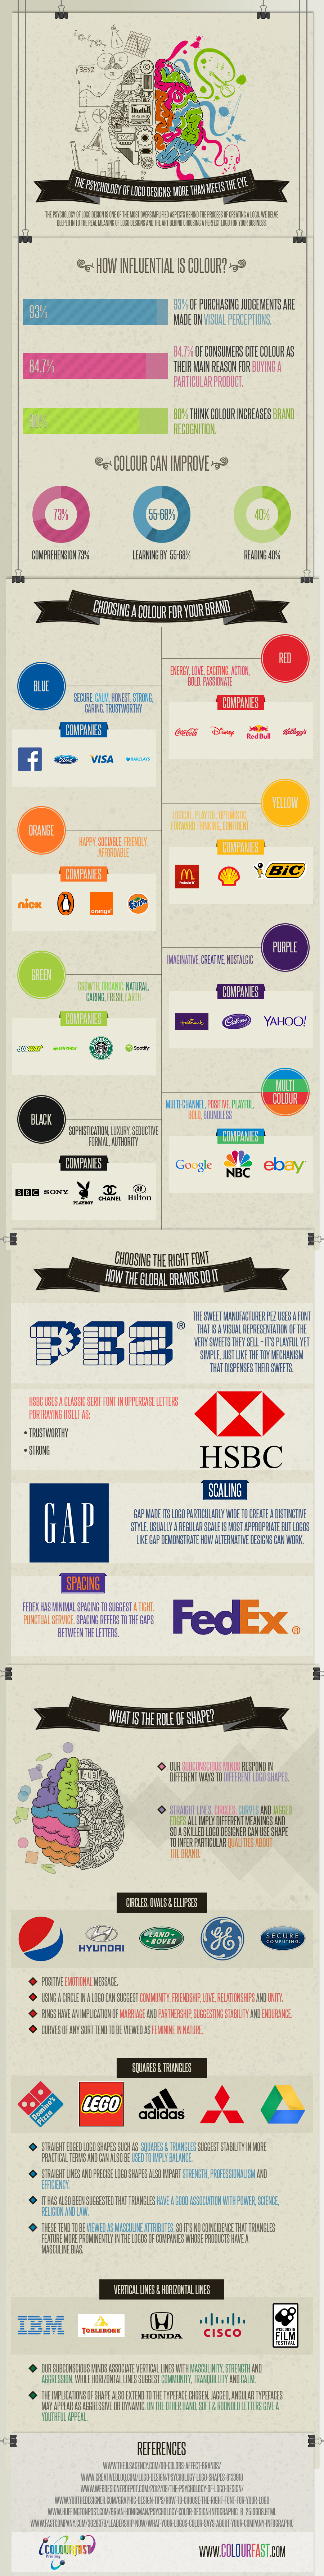 Colourfast - The Psychology Of Logo Designs